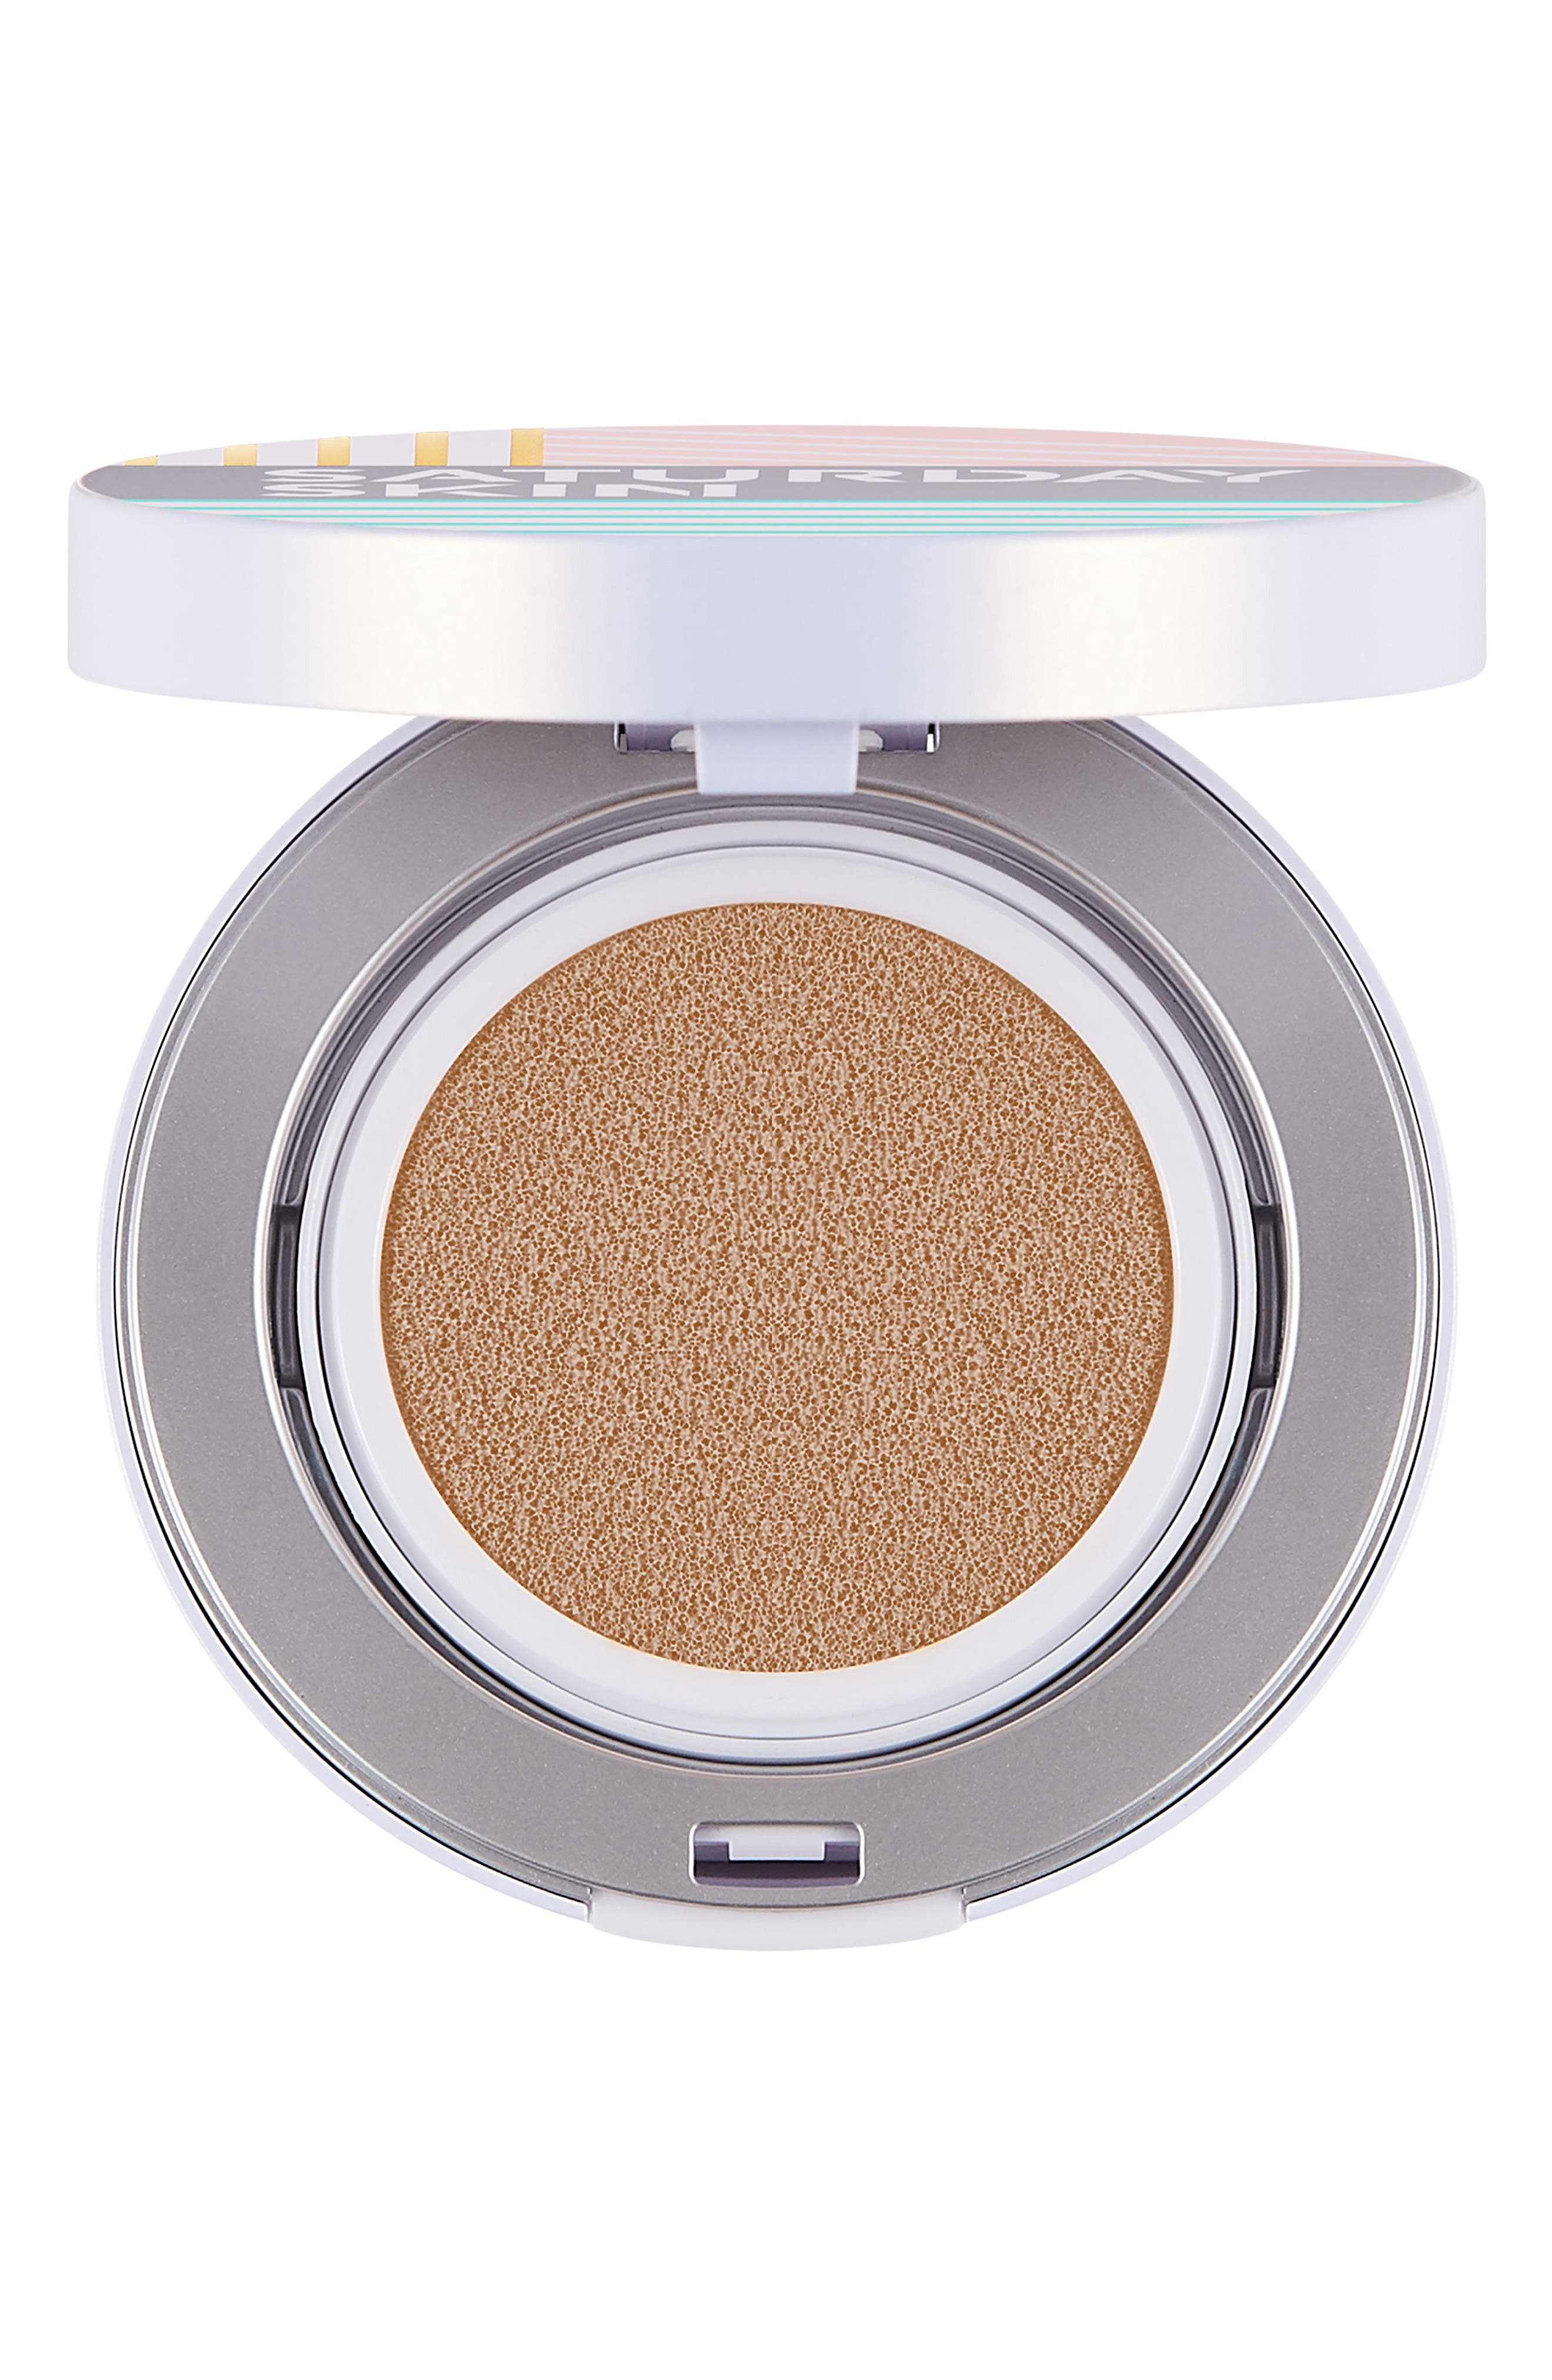 Main Image - Saturday Skin All Aglow Sunscreen Perfection Cushion Compact SPF 50